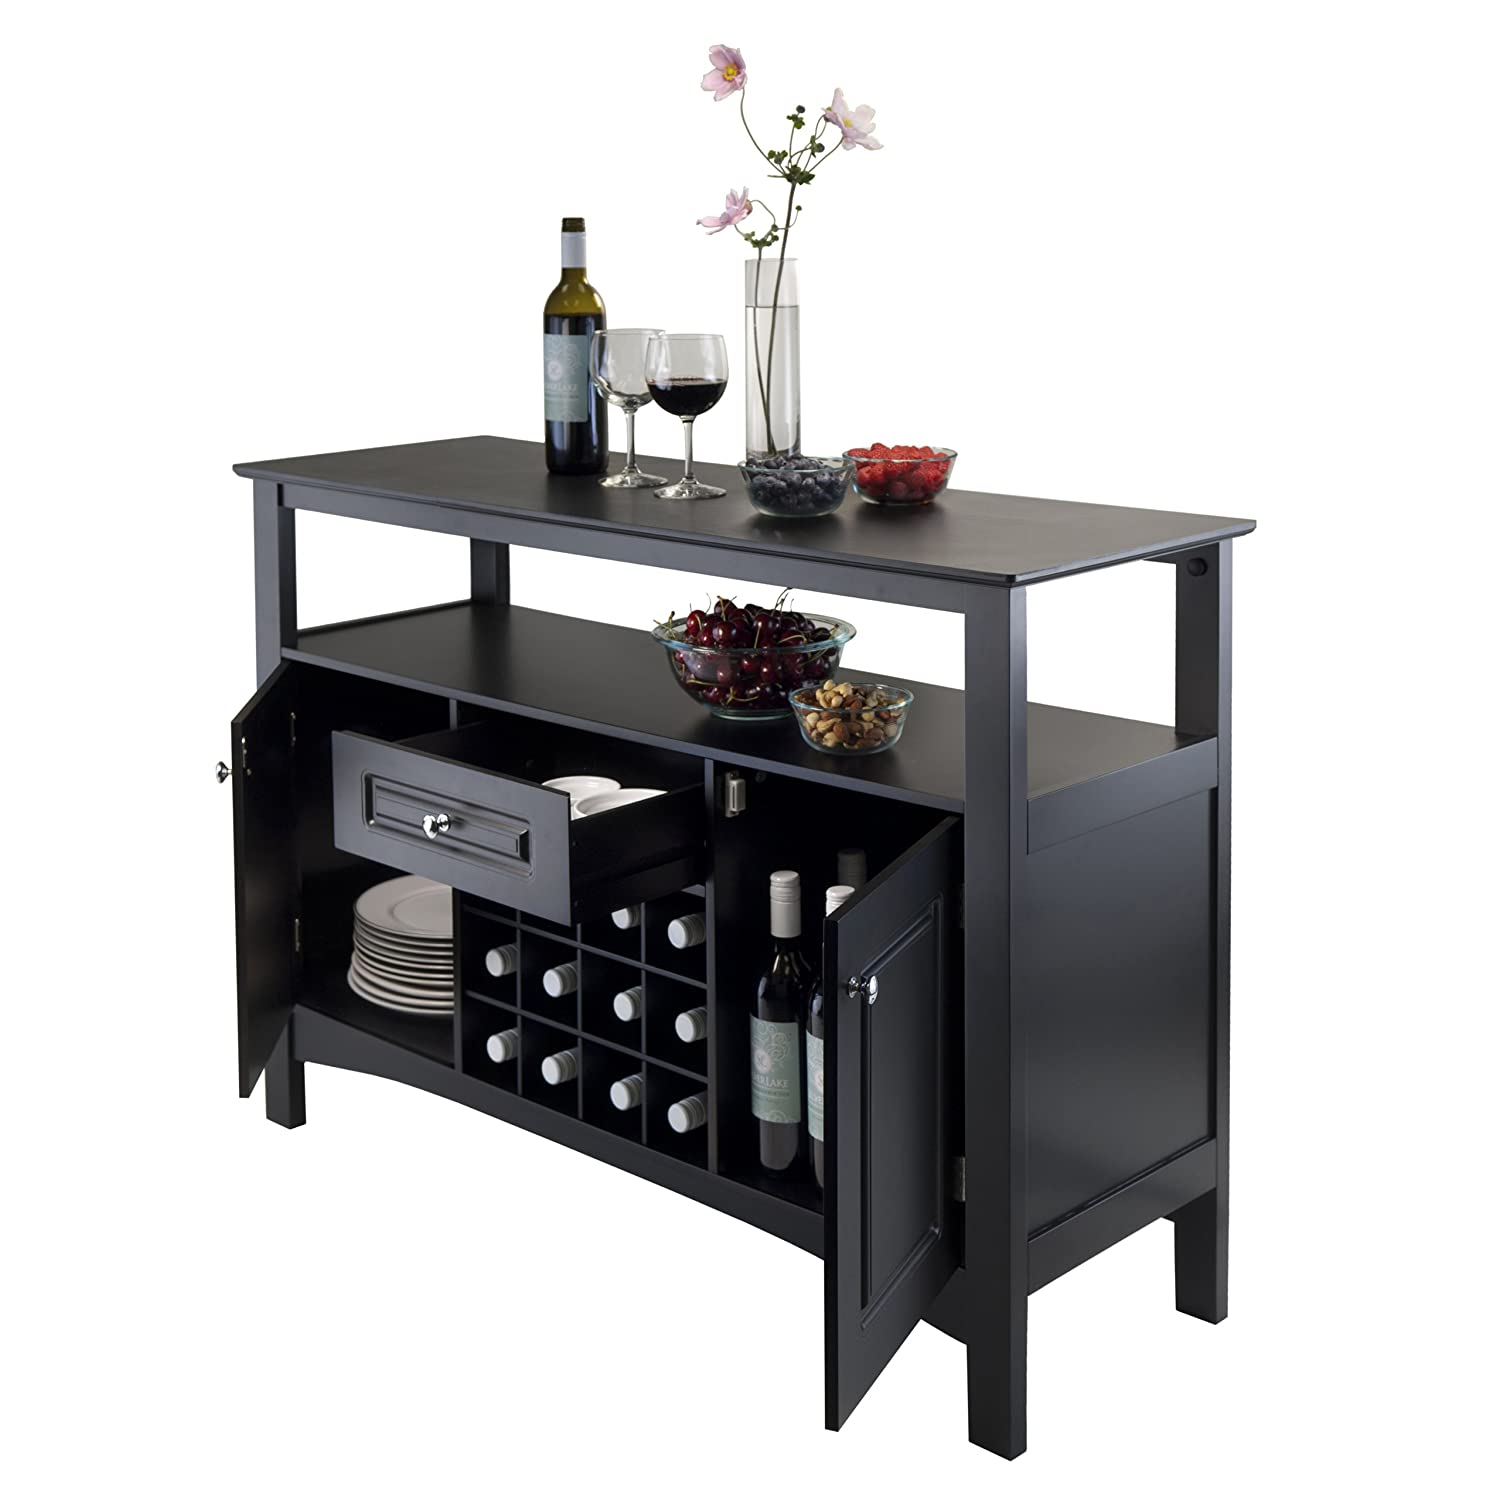 Wine bottle holder stand home mini bar liquor storage table wooden rack cabinet ebay Wine racks for small spaces pict